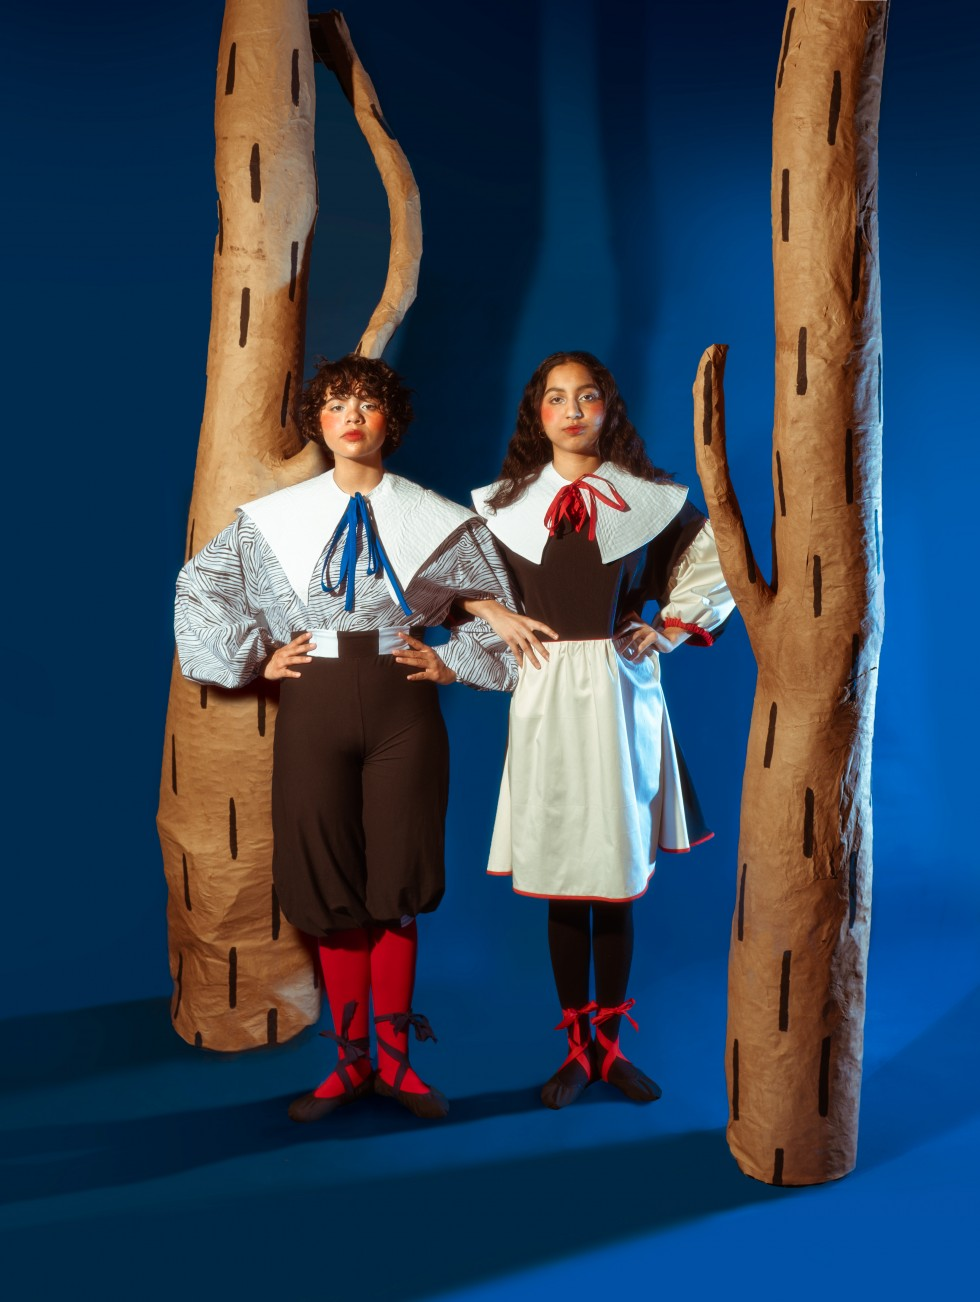 In all the images two figures stand in the middle of the frame in front of a blue background between two paper mache trees that are brown with a painted black dash pattern. In all three images model, one stands on the left side wearing a white shirt with